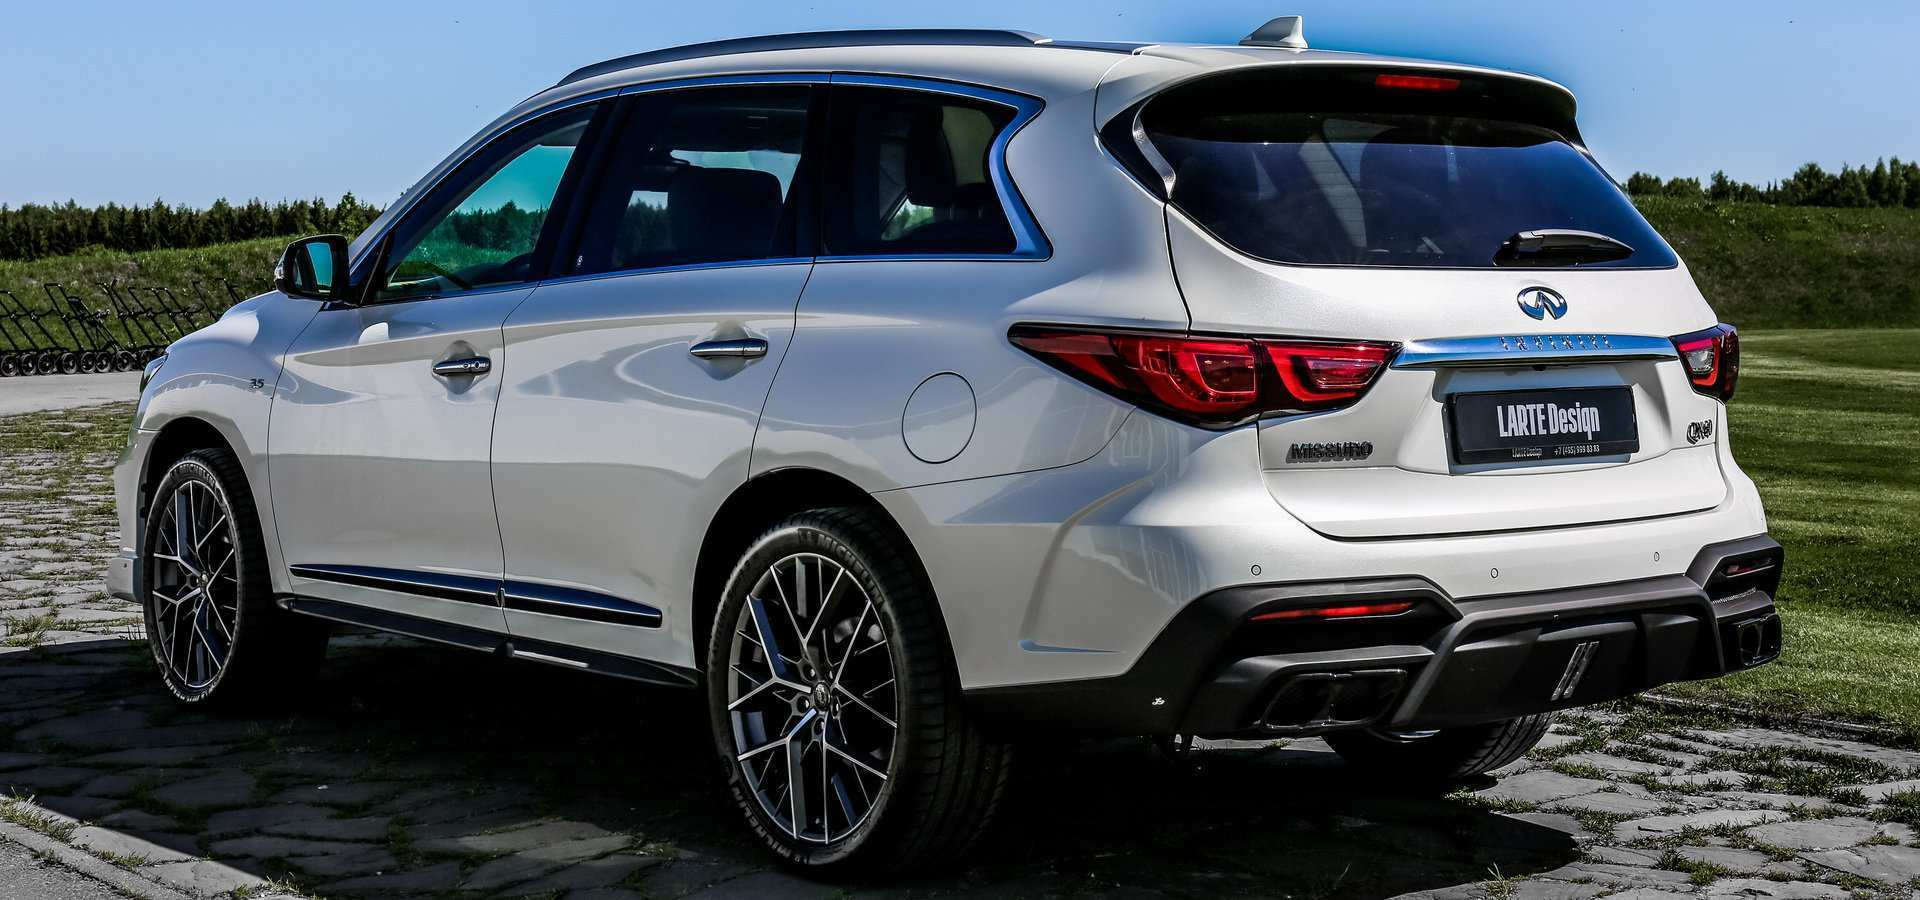 32 Best Infiniti Qx60 New Model 2020 Spy Shoot